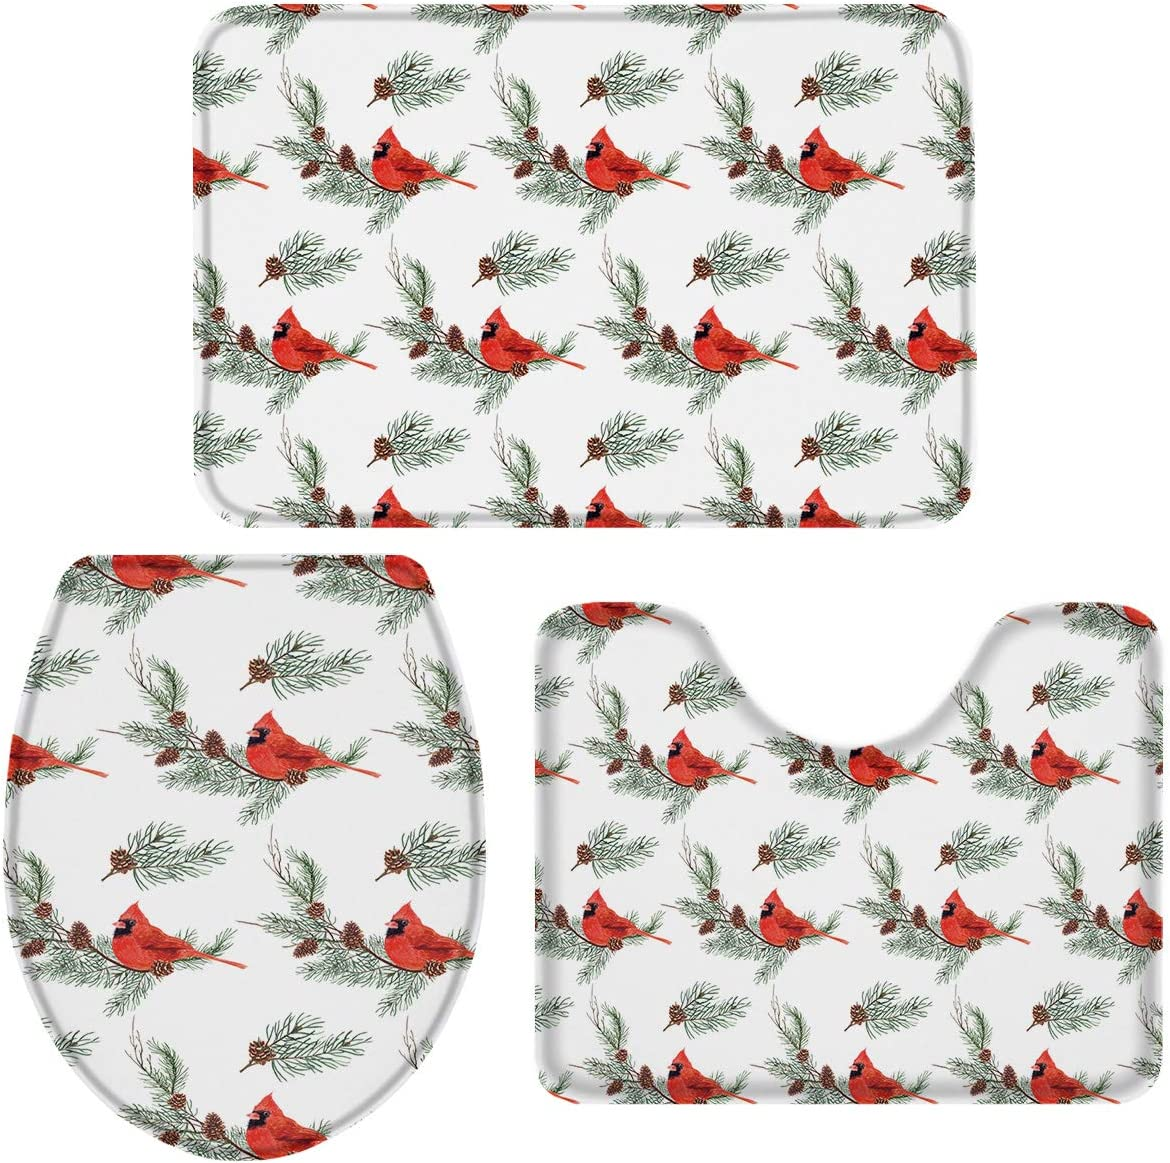 3-Piece Bath Rug and Mat Sets Cones 完全送料無料 Le Cardinal 未使用品 Birds Pine with